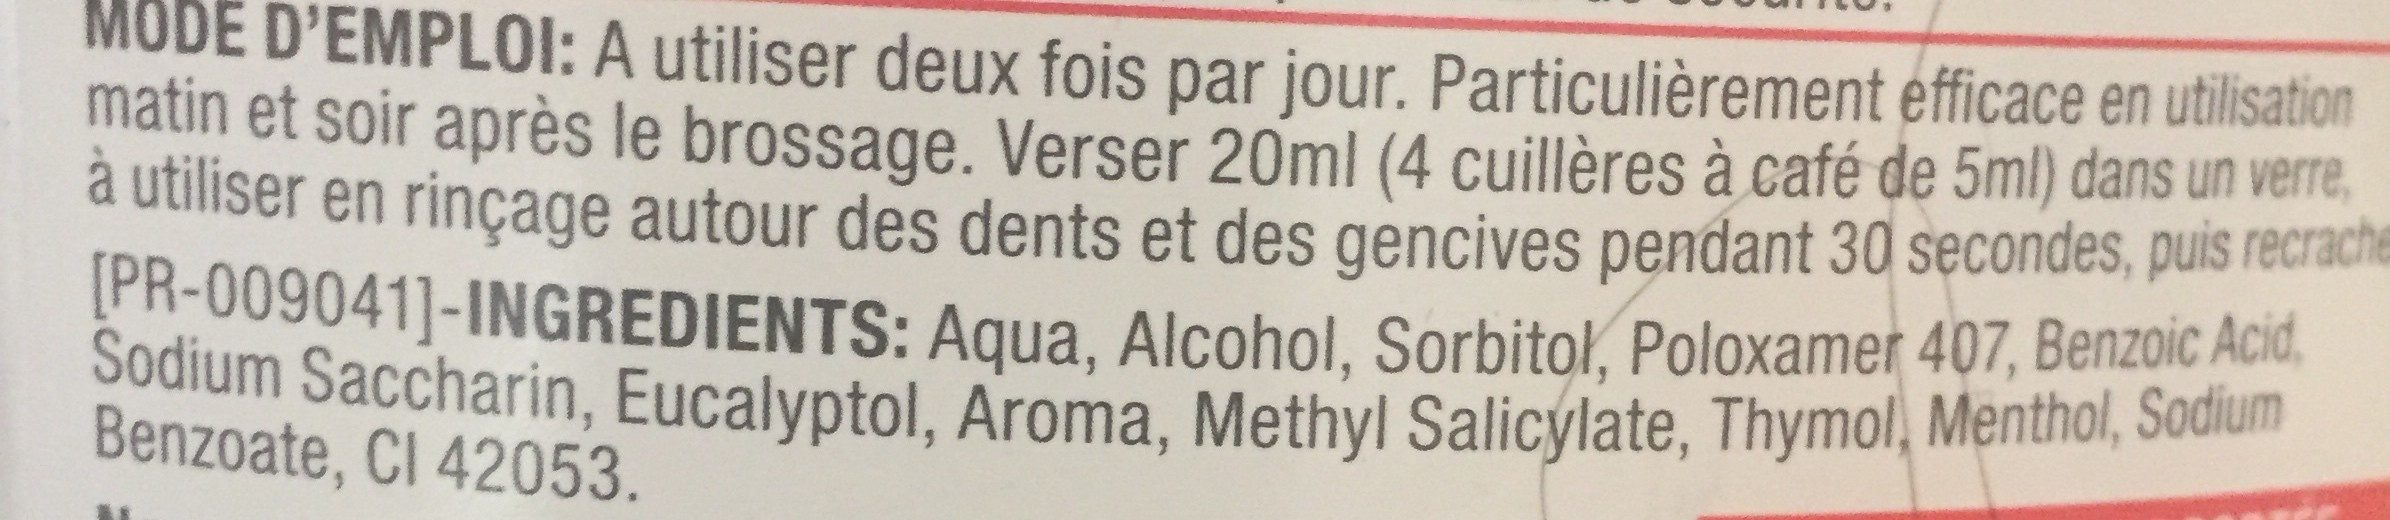 Bain de bouche quotidien - Ingredients - fr